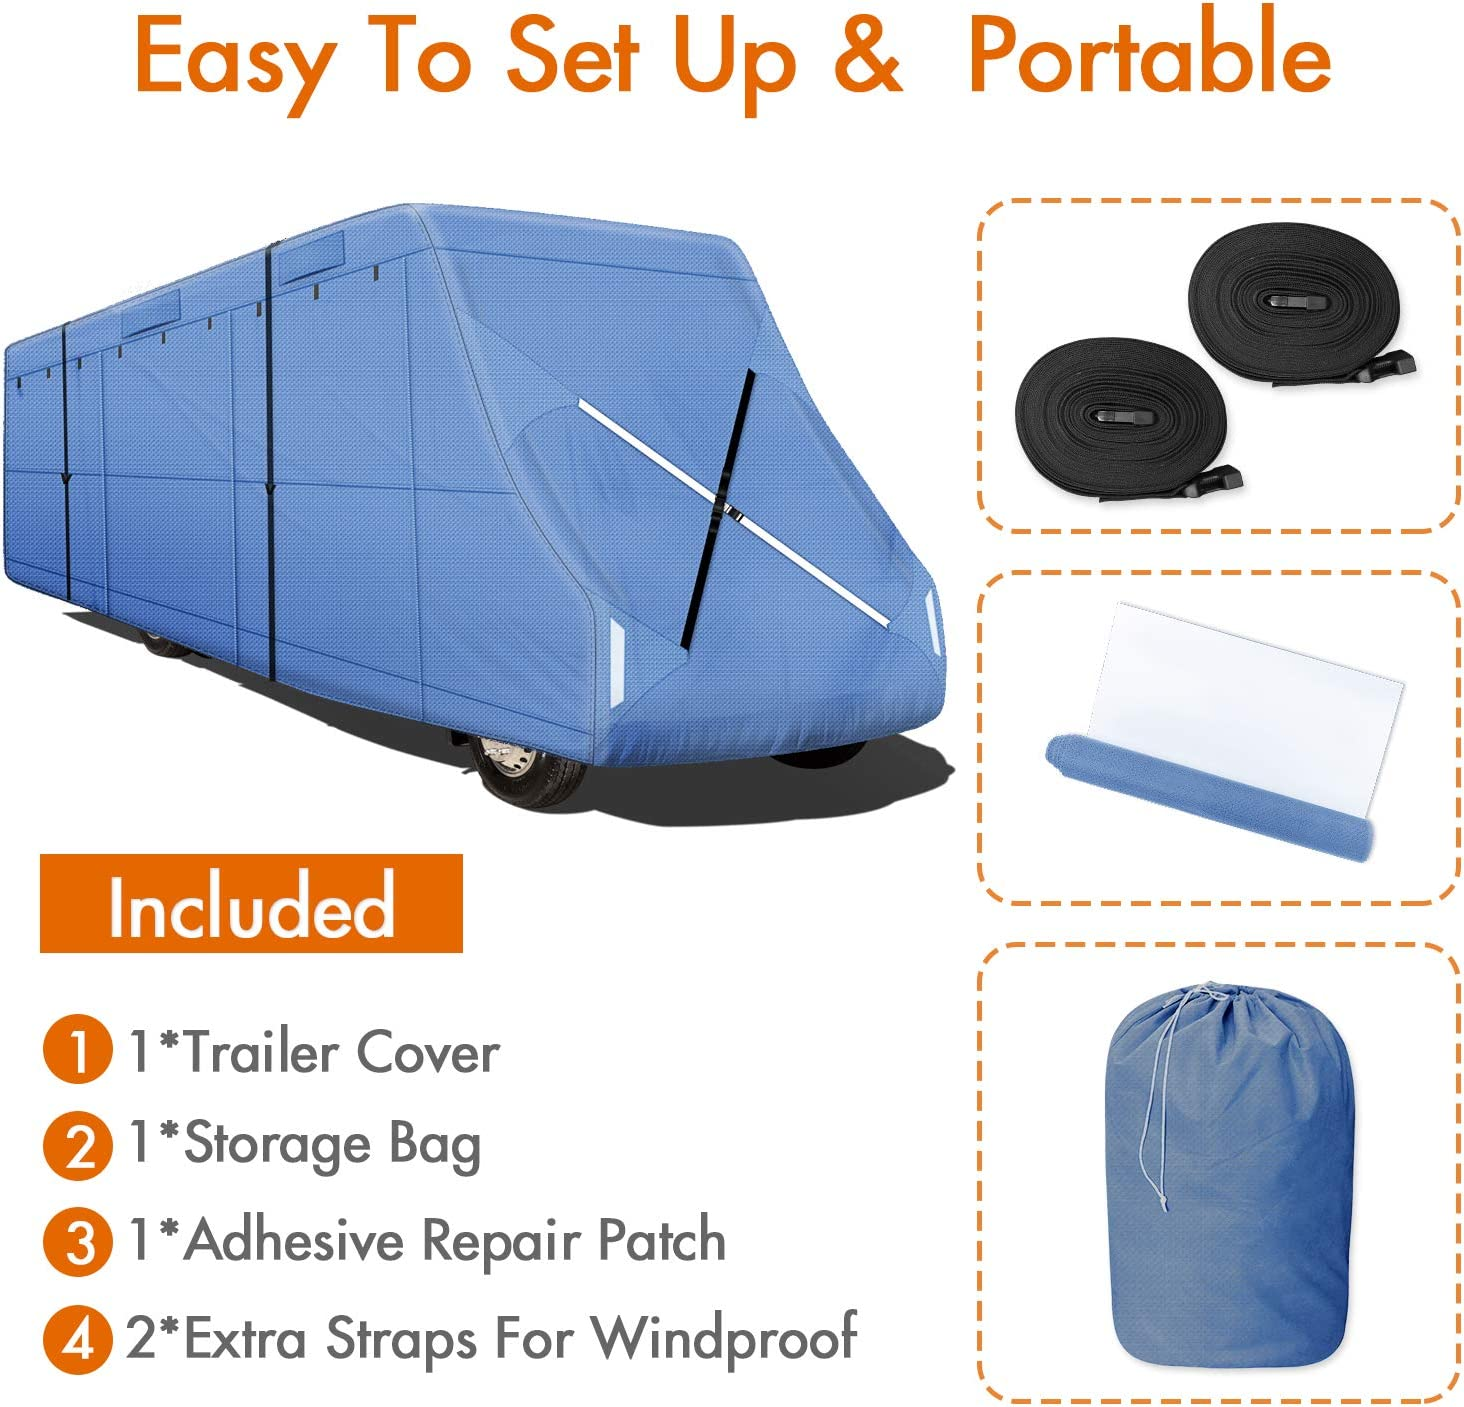 Leader Accessories Easy Setup Class C Cover Windproof Upgrade RV Cover Fits 32-35 Motorhome with Adhesive Repair Patch